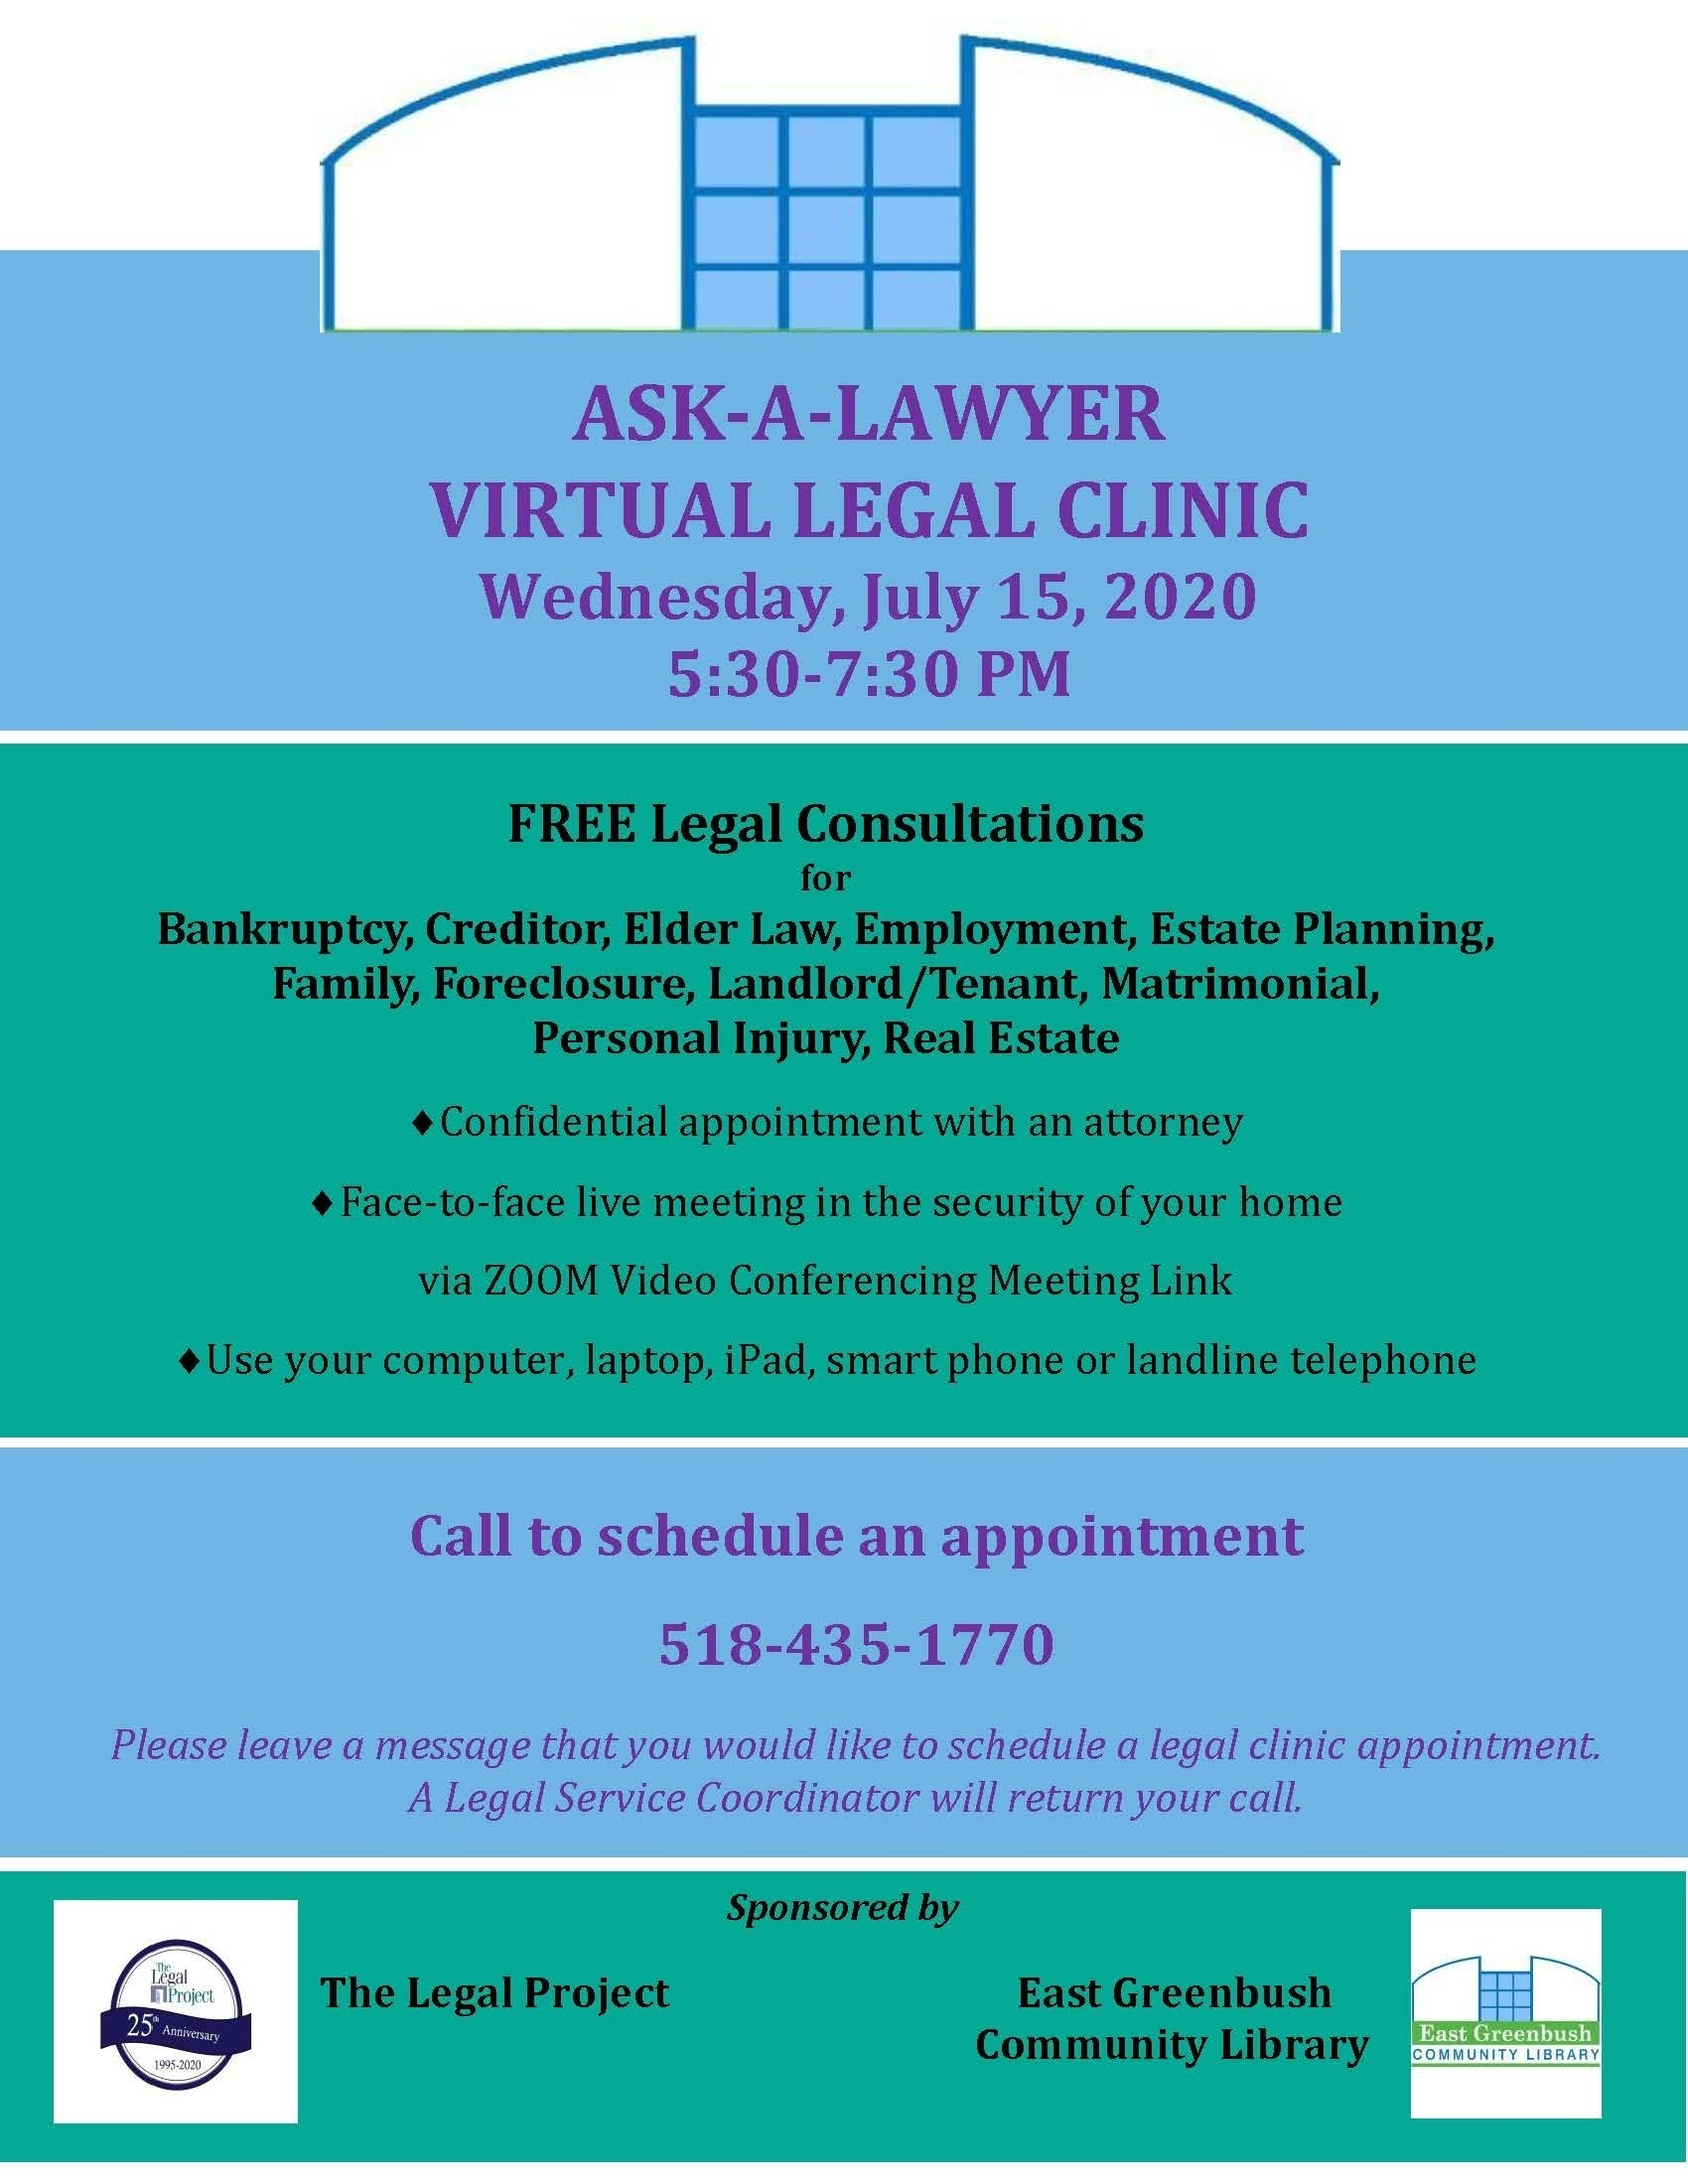 virtual legal clinic Image